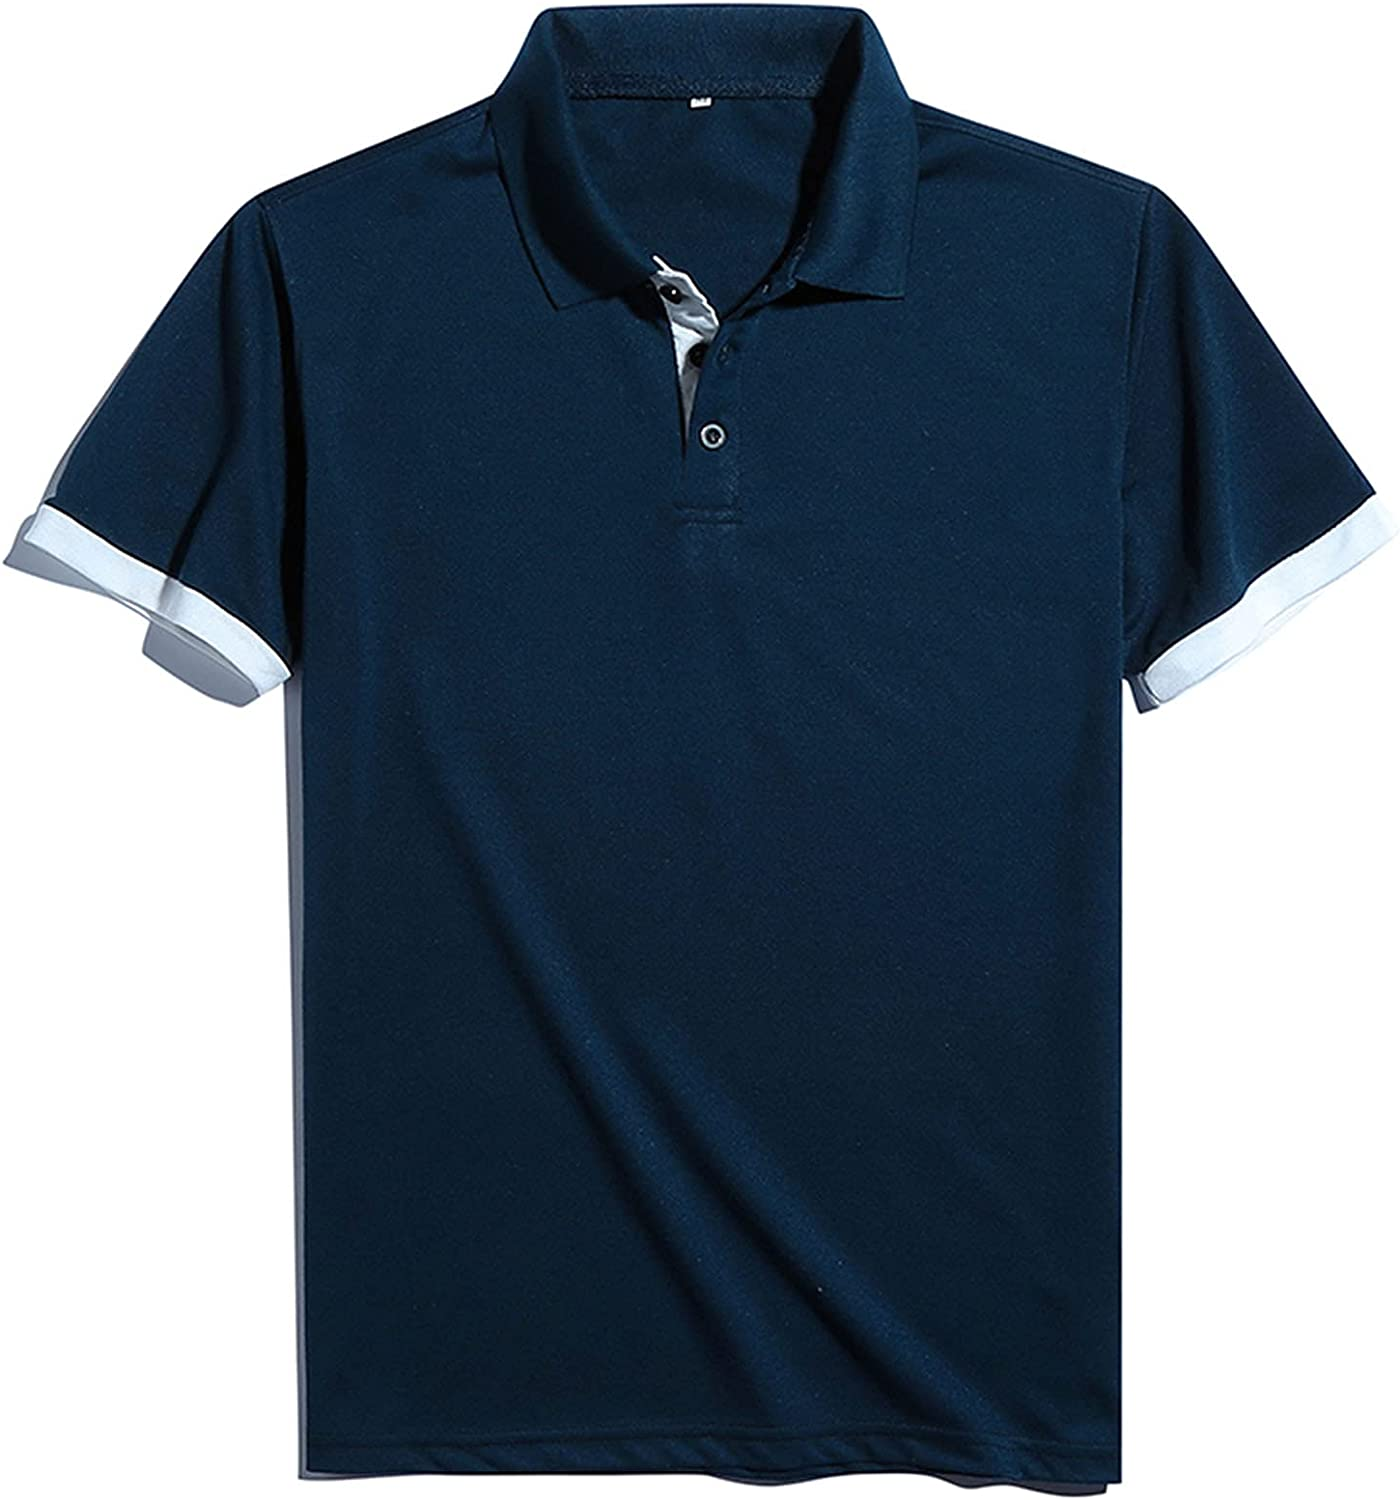 Maryia Mens Classic Polo Shirts Casual Short Sleeve Summer Lightweight Dry Fit Cotton Solid Stretch Tee Tops